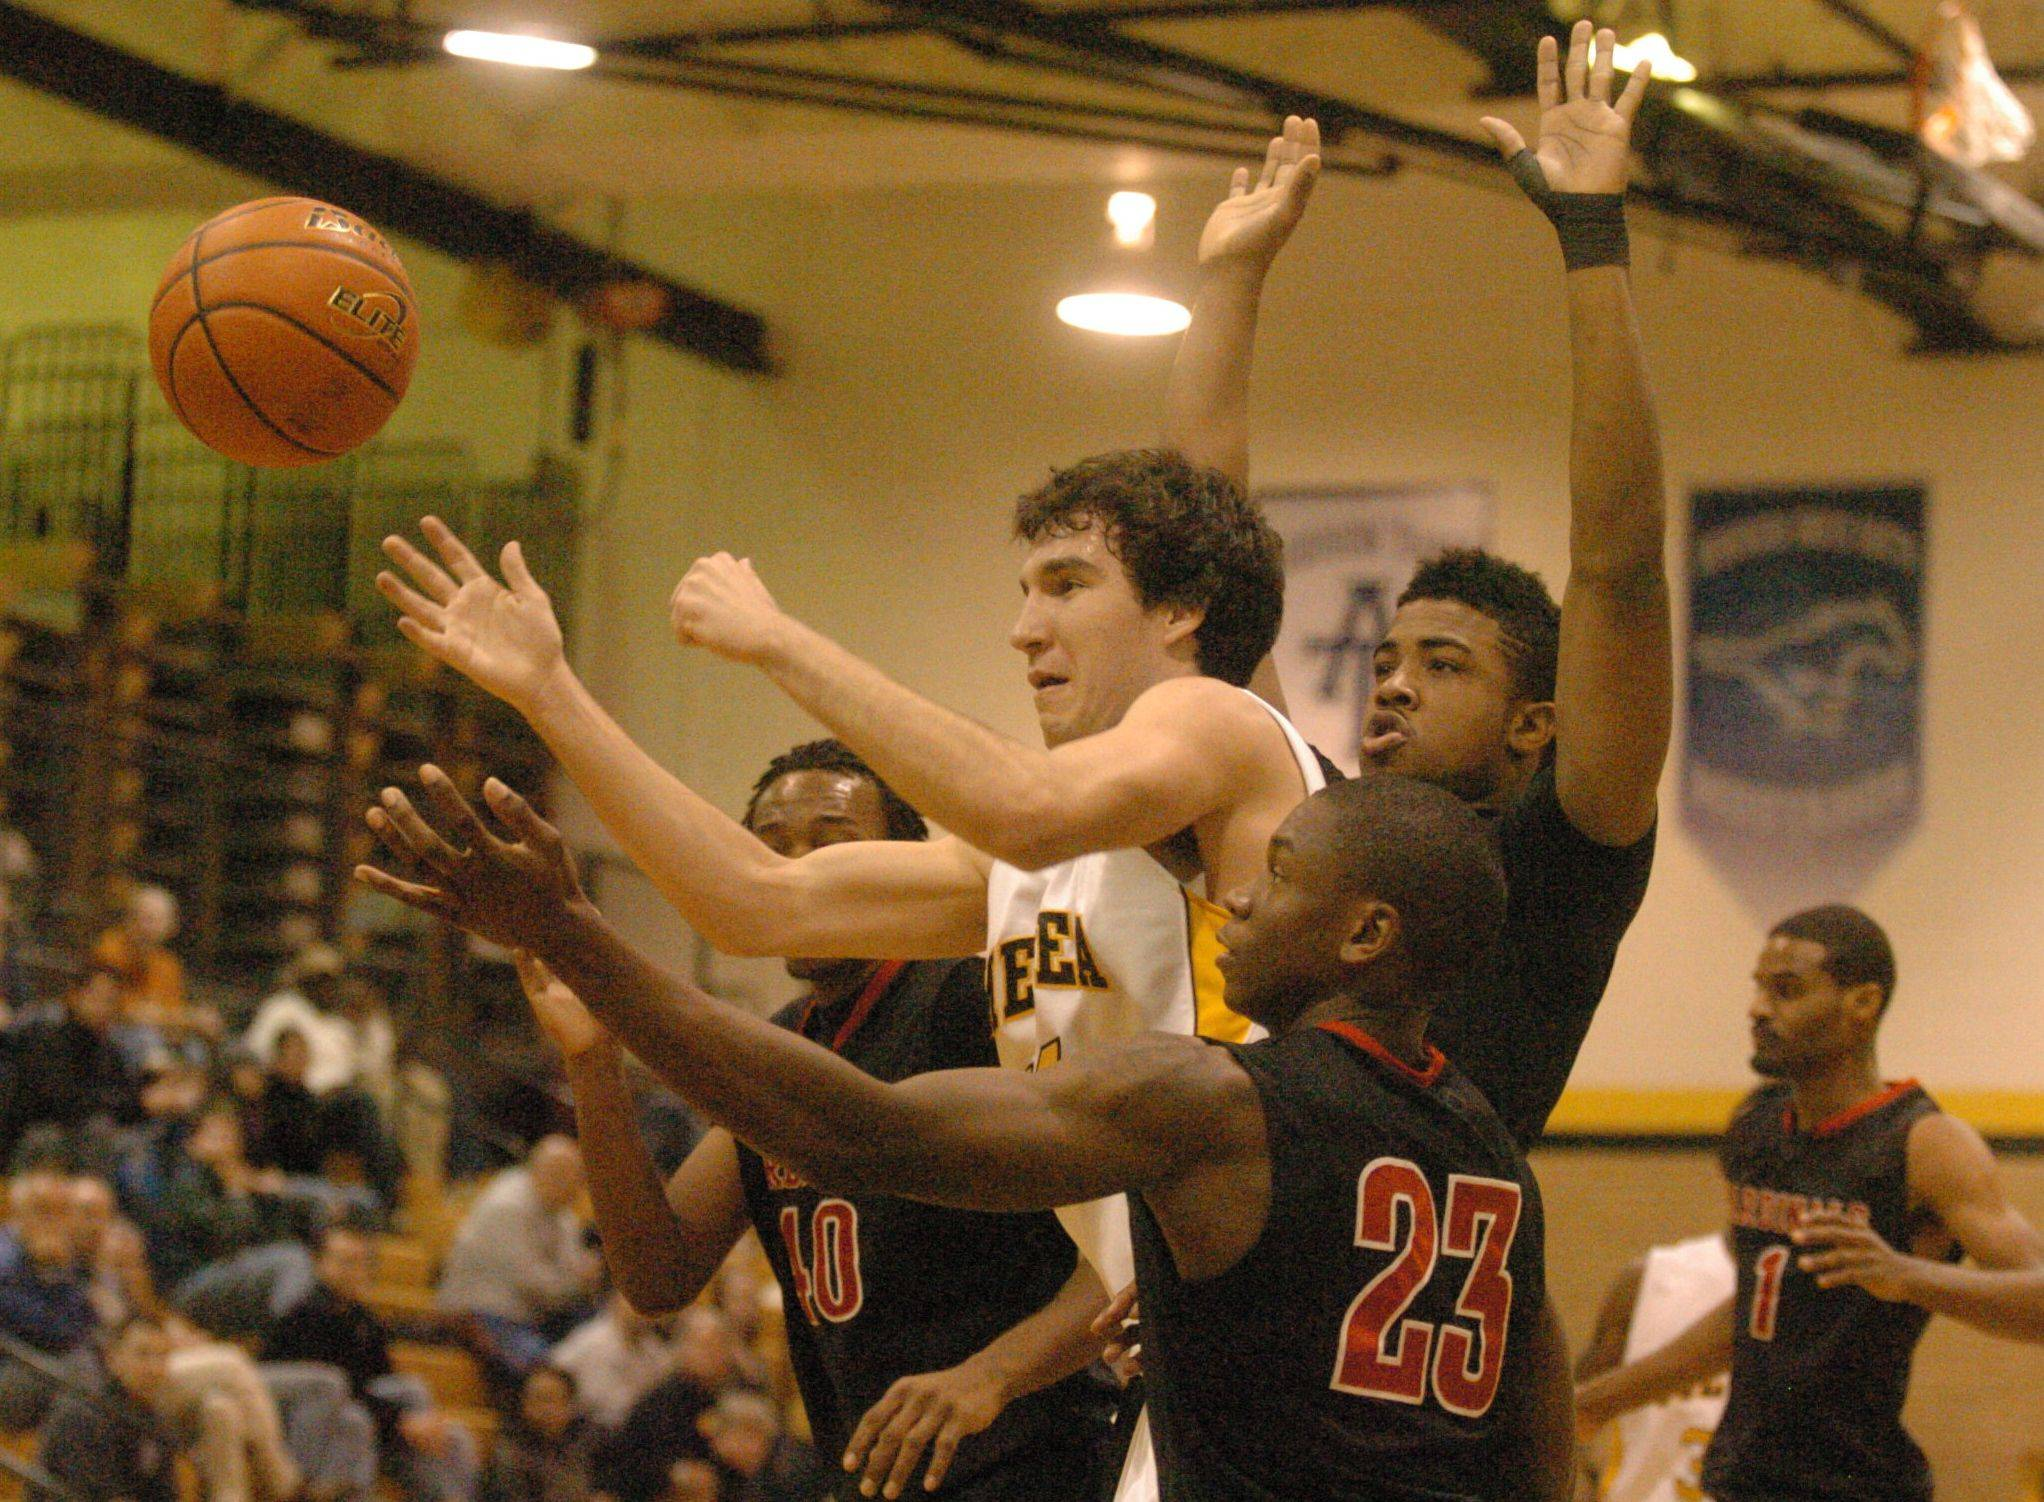 Images from the Metea Valley vs. Eisenhower boys basketball game on Tuesday, December 27, 2011.